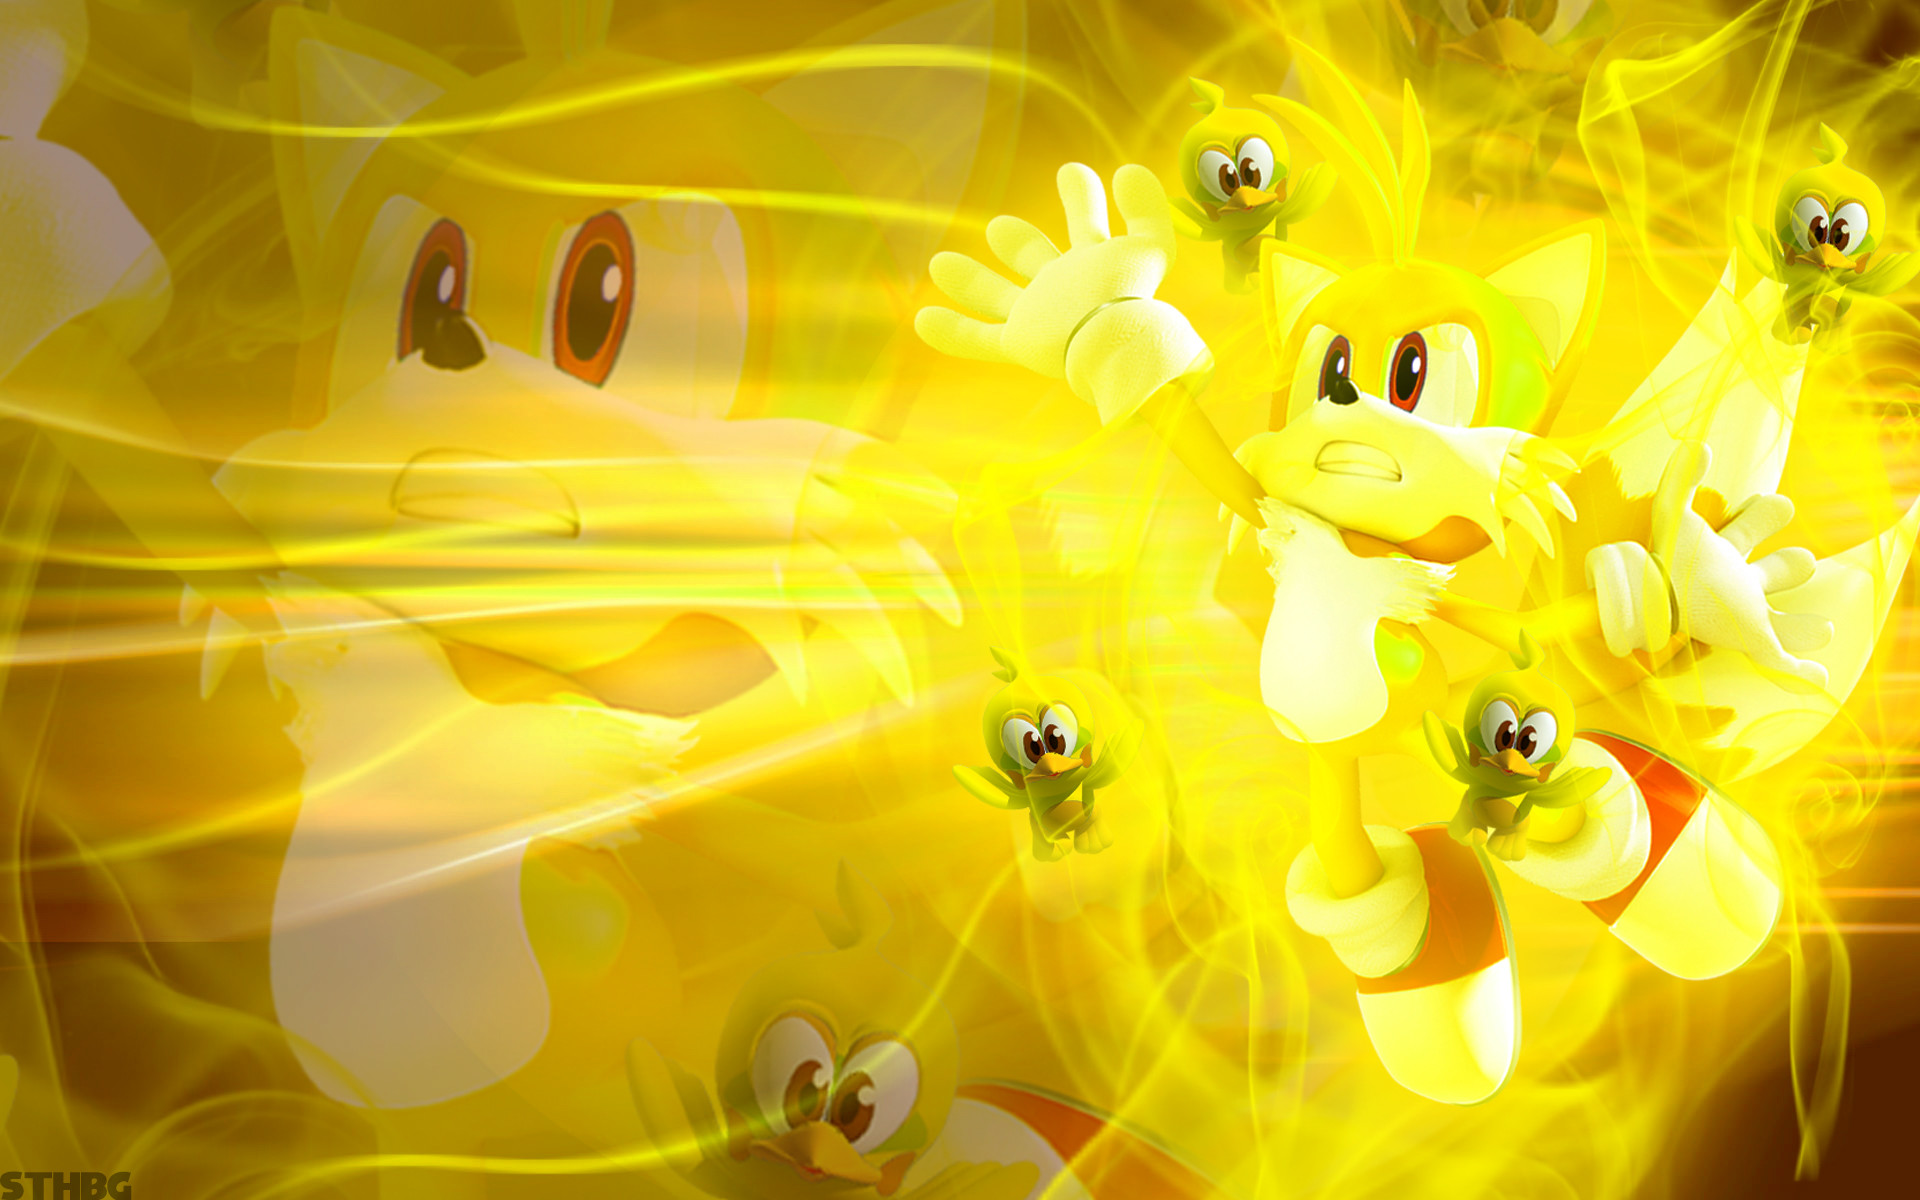 1920x1200 Download. « Super Sonic Desktop Background Wallpaper · Super Sonic  Background Wallpaper »